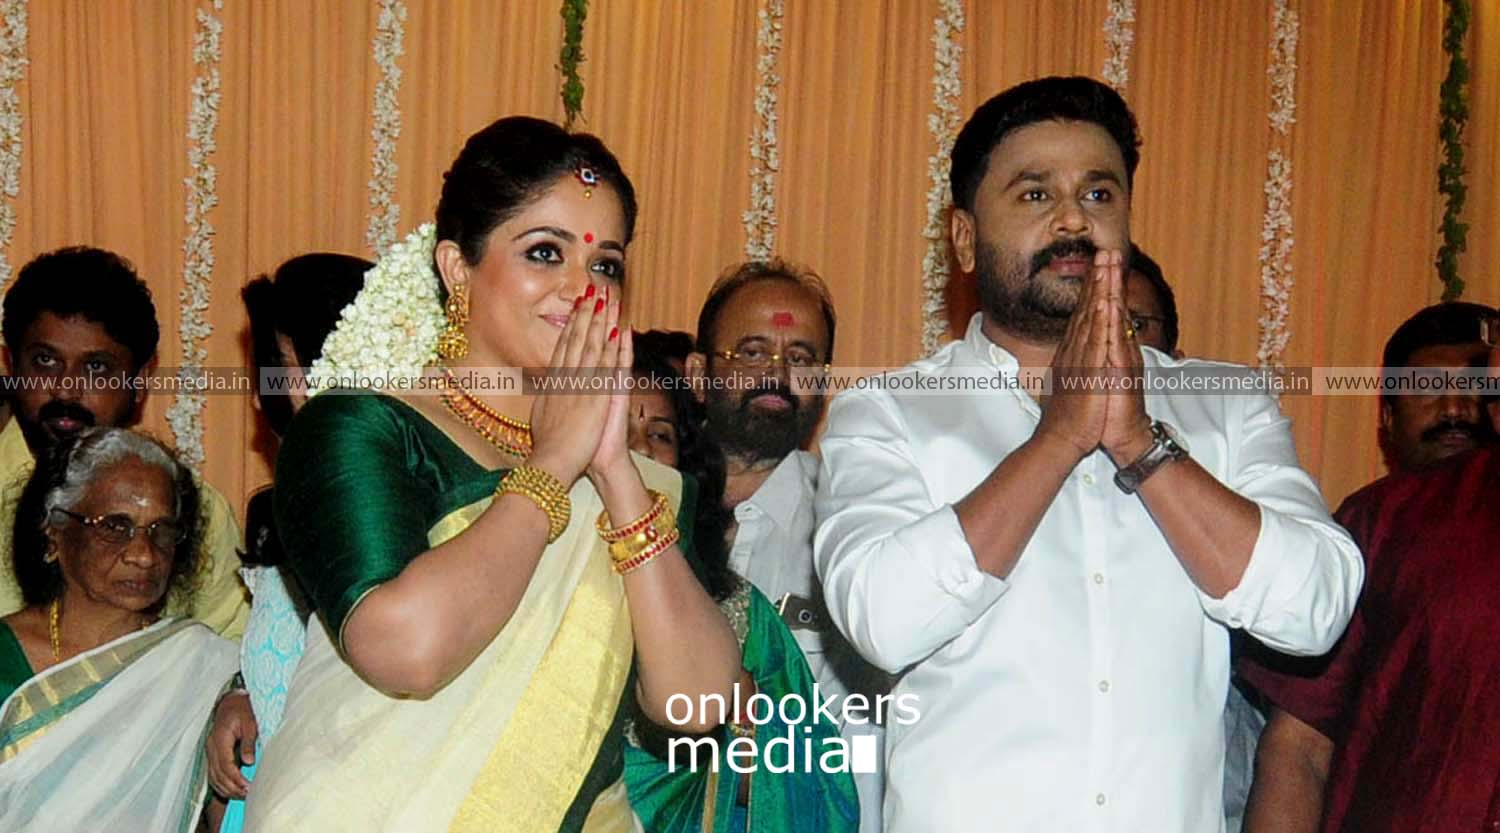 http://onlookersmedia.in/wp-content/uploads/2016/11/Dileep-Kavya-Madhavan-Wedding-Stills-Photos-10.jpg